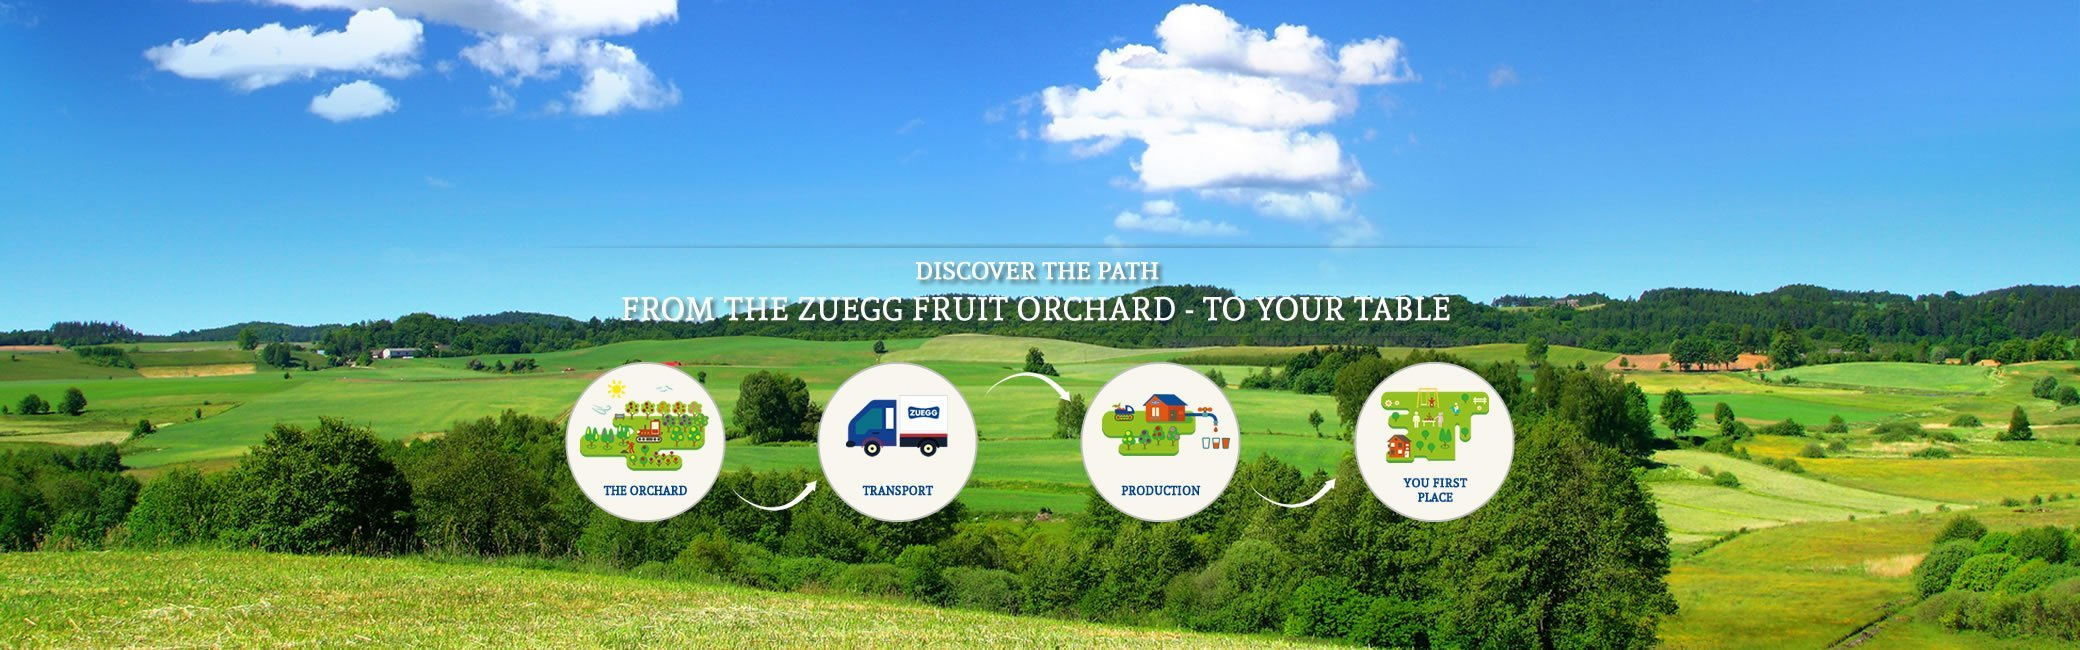 ORCHARDS ZUEGG